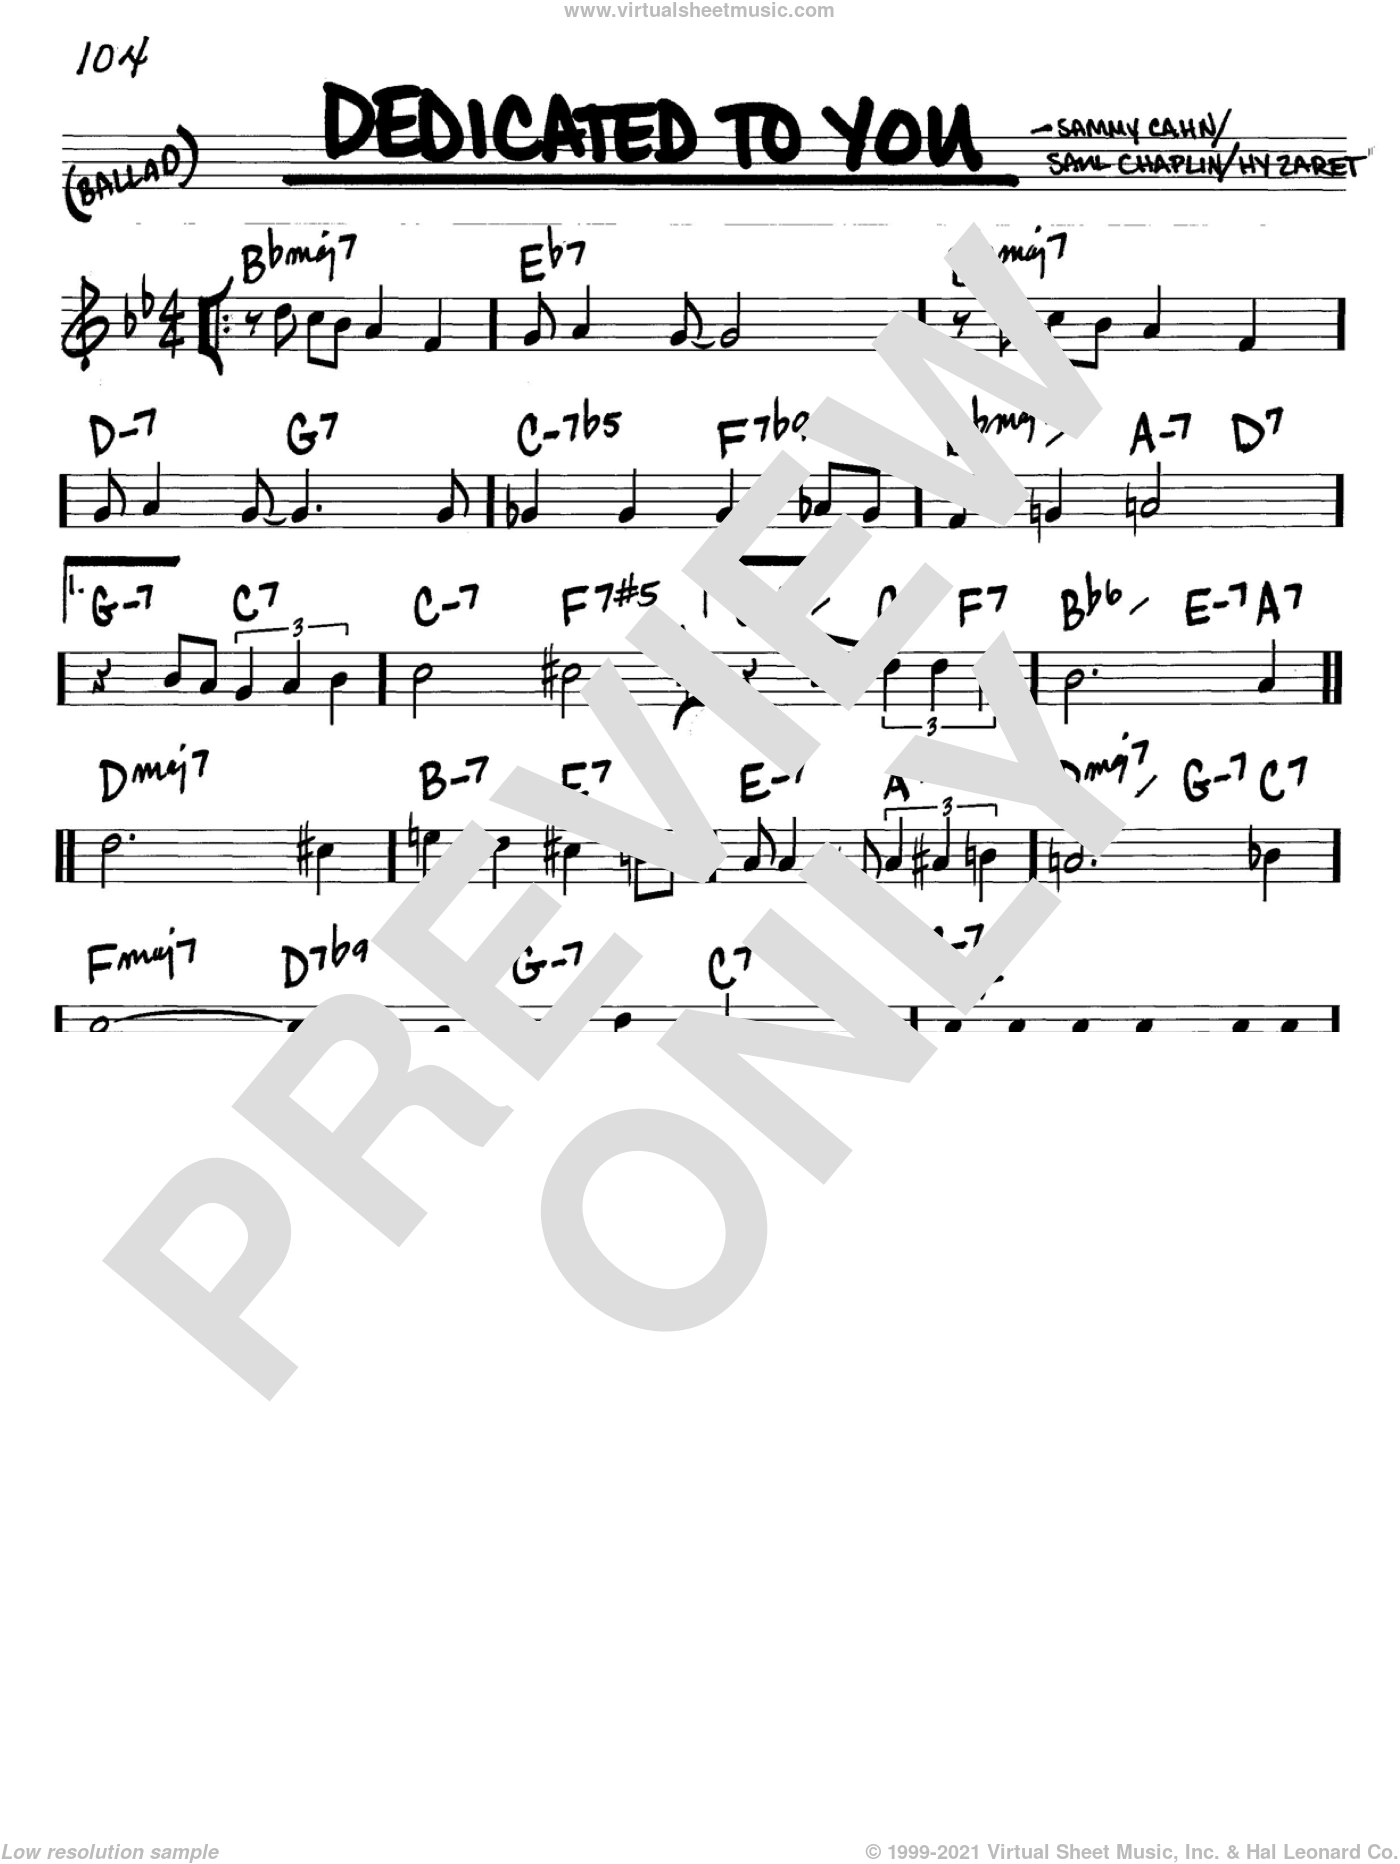 Dedicated To You sheet music for voice and other instruments (C) by Saul Chaplin